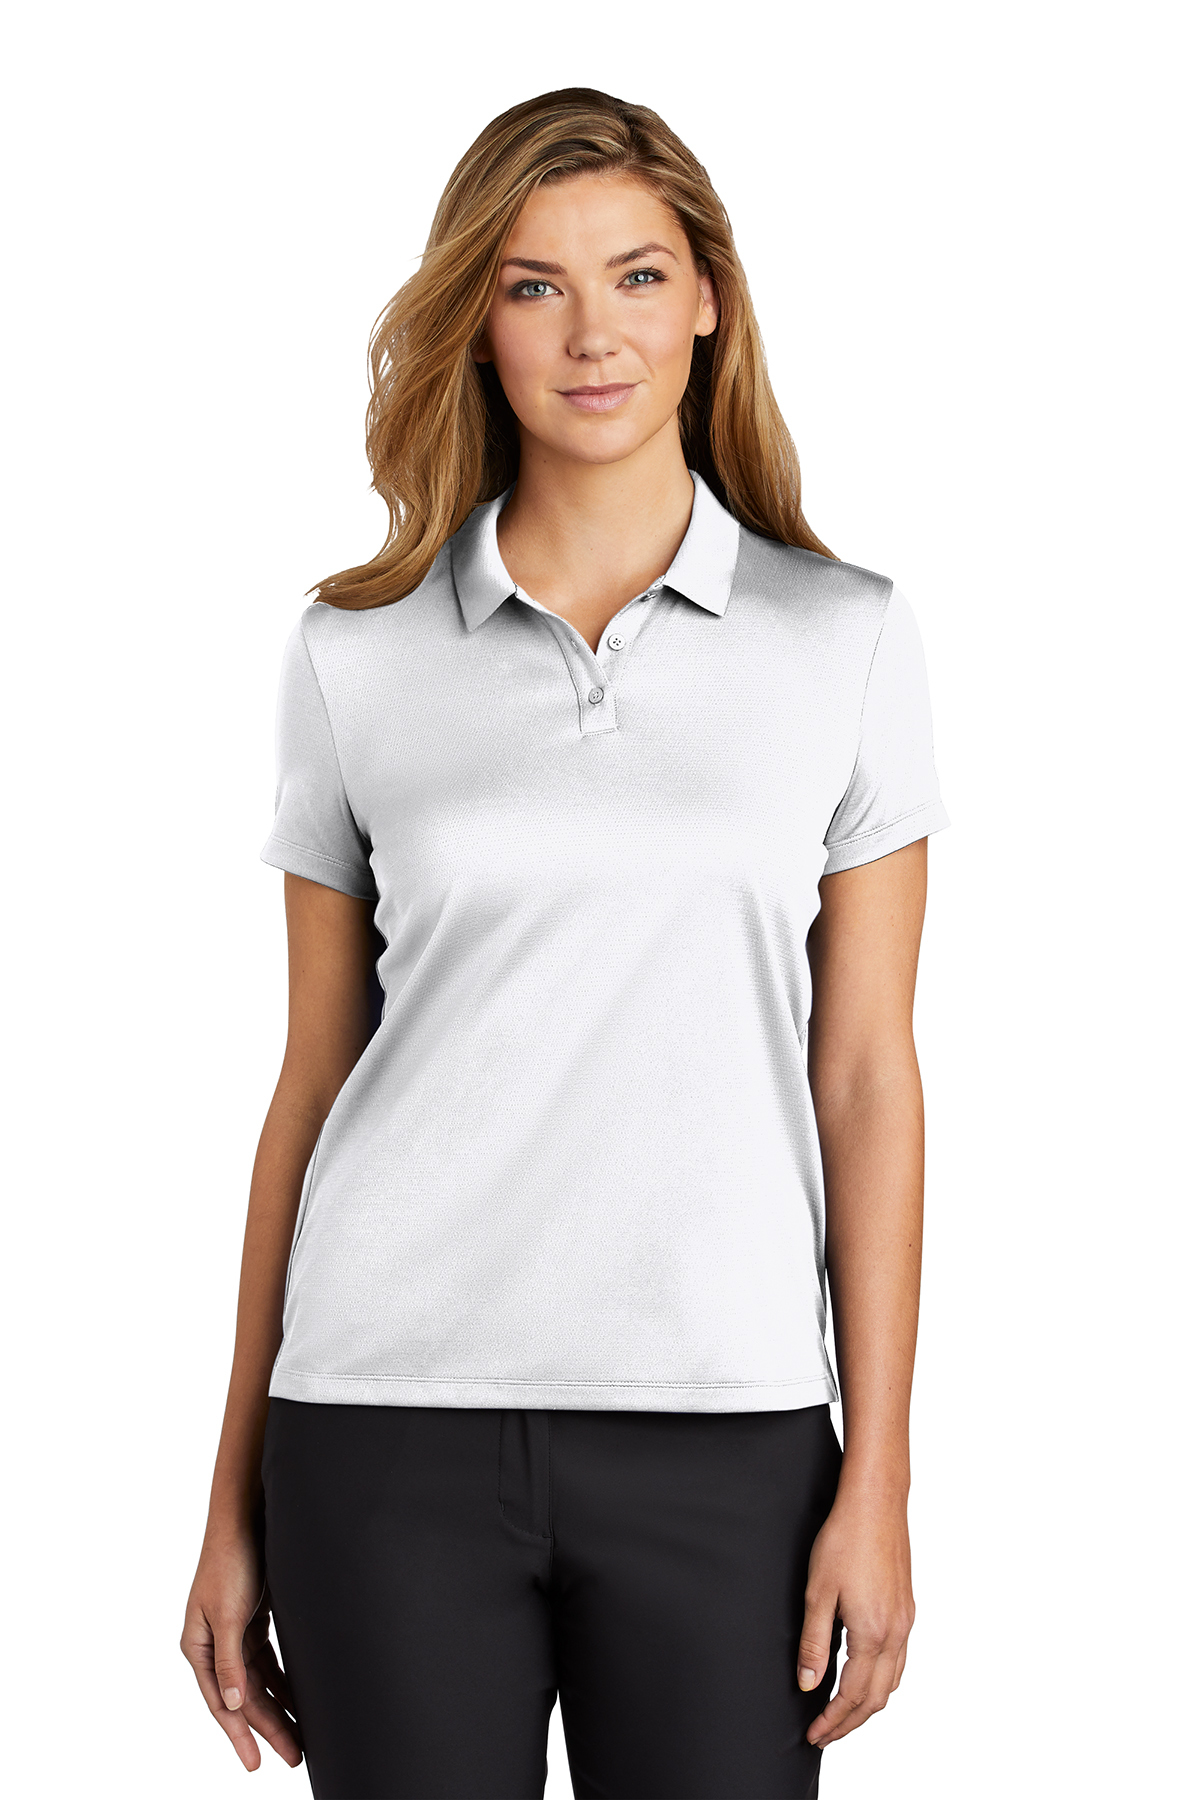 Nike Golf NKBV6043 - Ladies Dry Essential Solid Polo